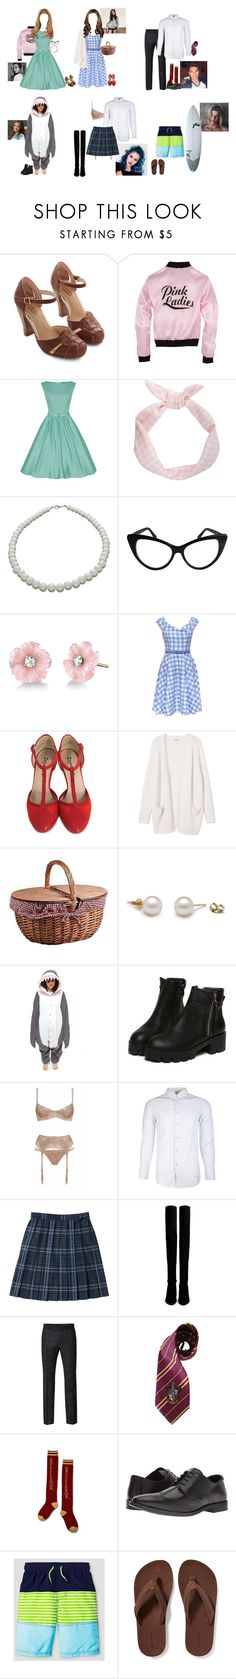 """""""halloween"""" by wildflower-wonderland ❤ liked on Polyvore featuring Seychelles, NEXTE Jewelry, Irene Neuwirth, Repetto, Monki, Picnic Time, Agent Provocateur, rag & bone, Stuart Weitzman and Ben Sherman"""